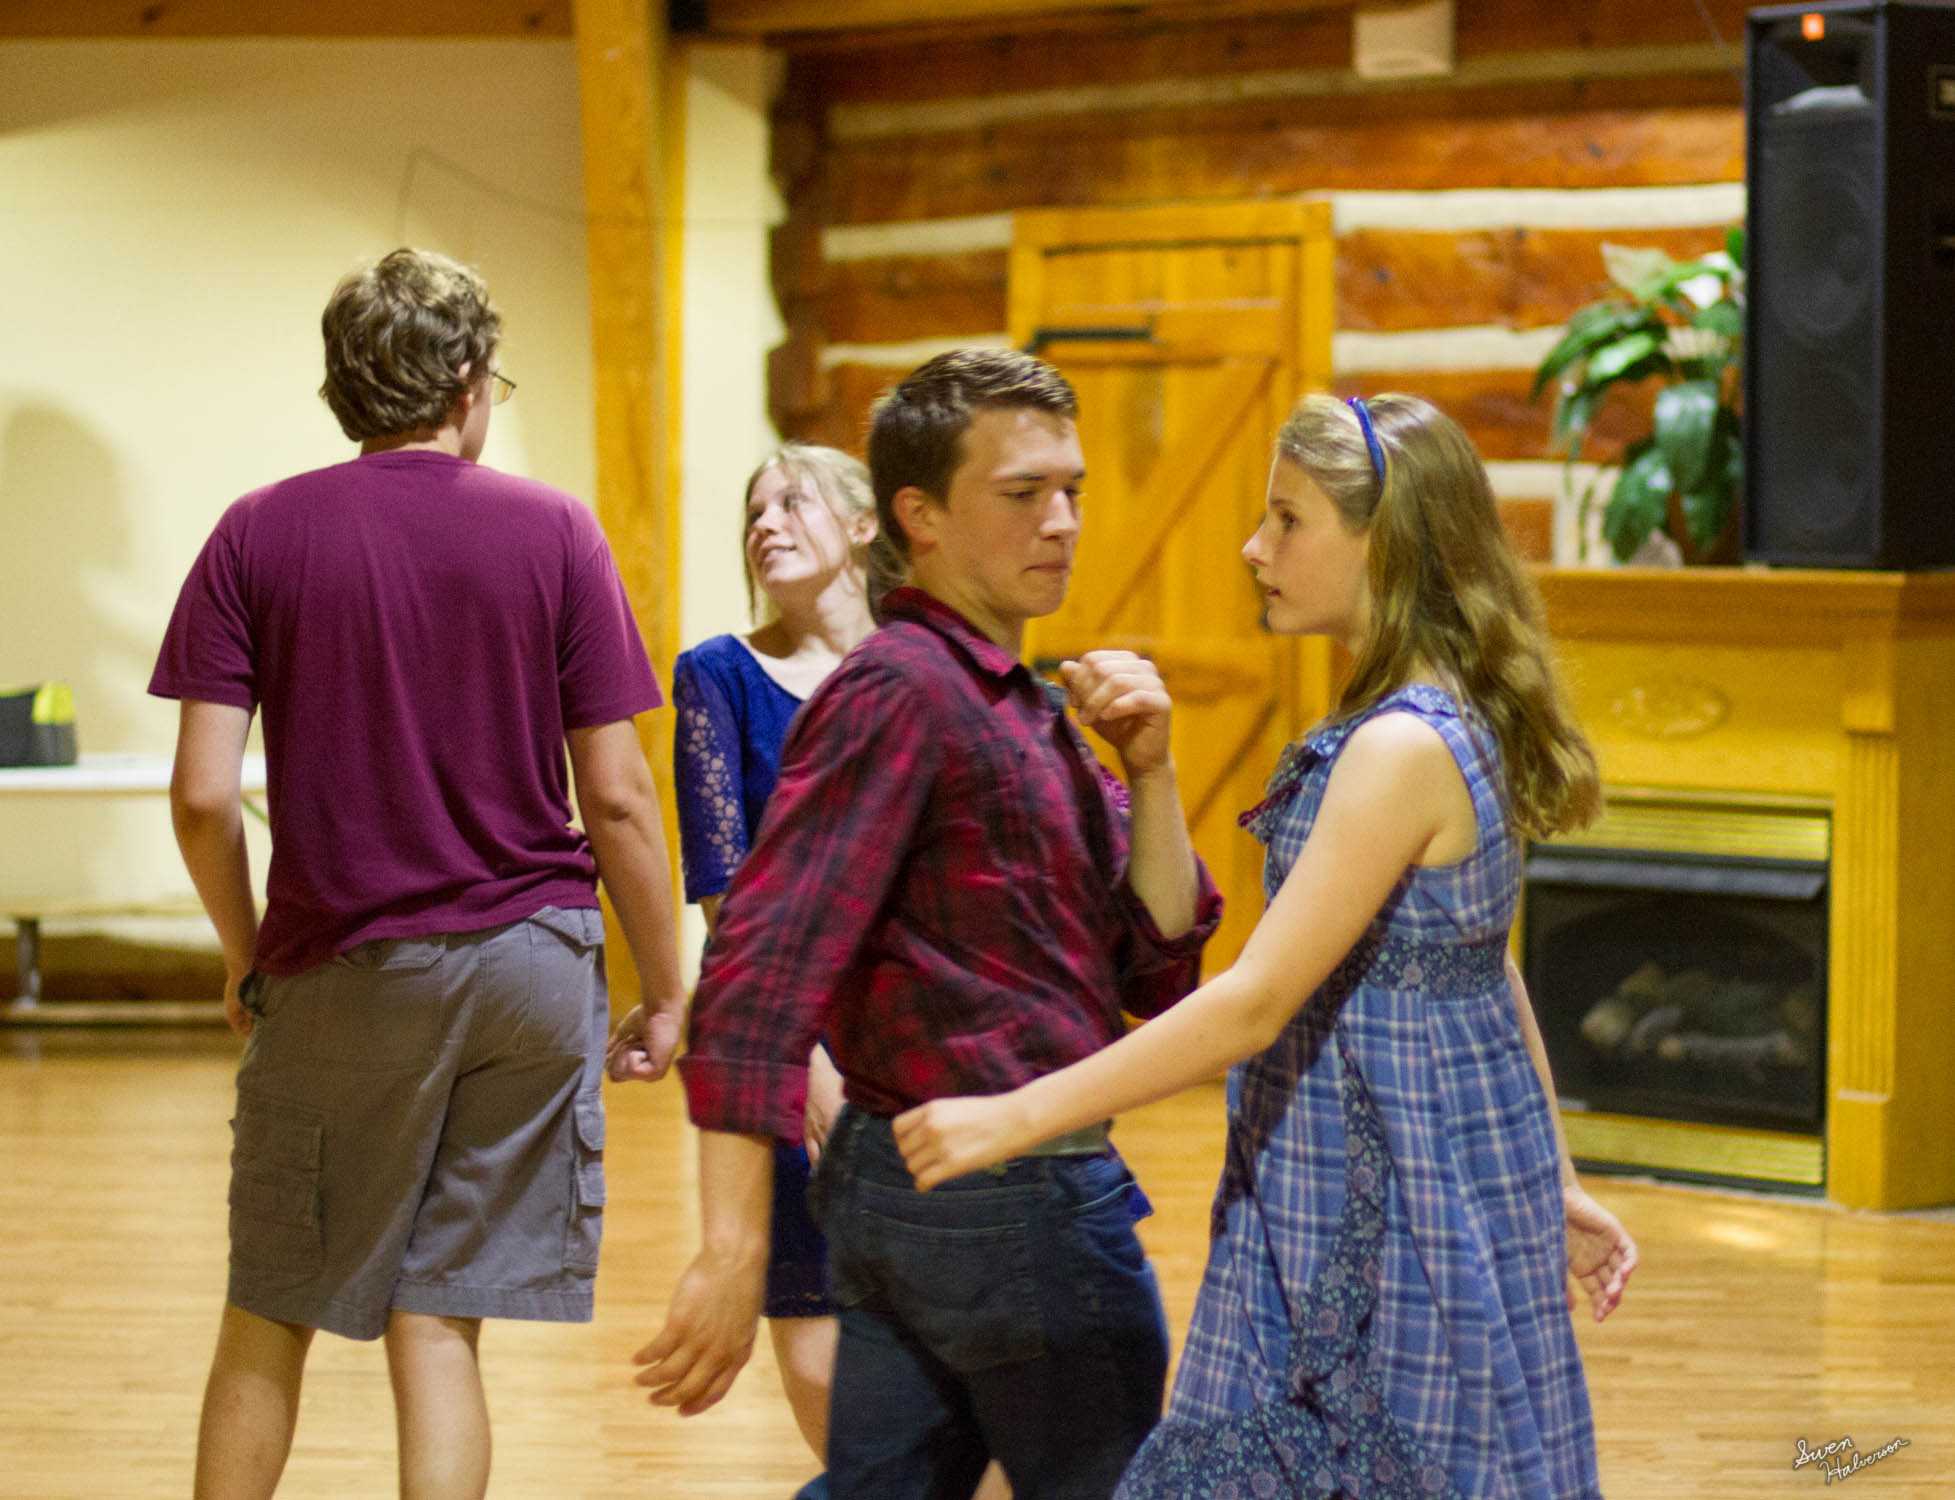 Contra dancing in Berea-028.jpg